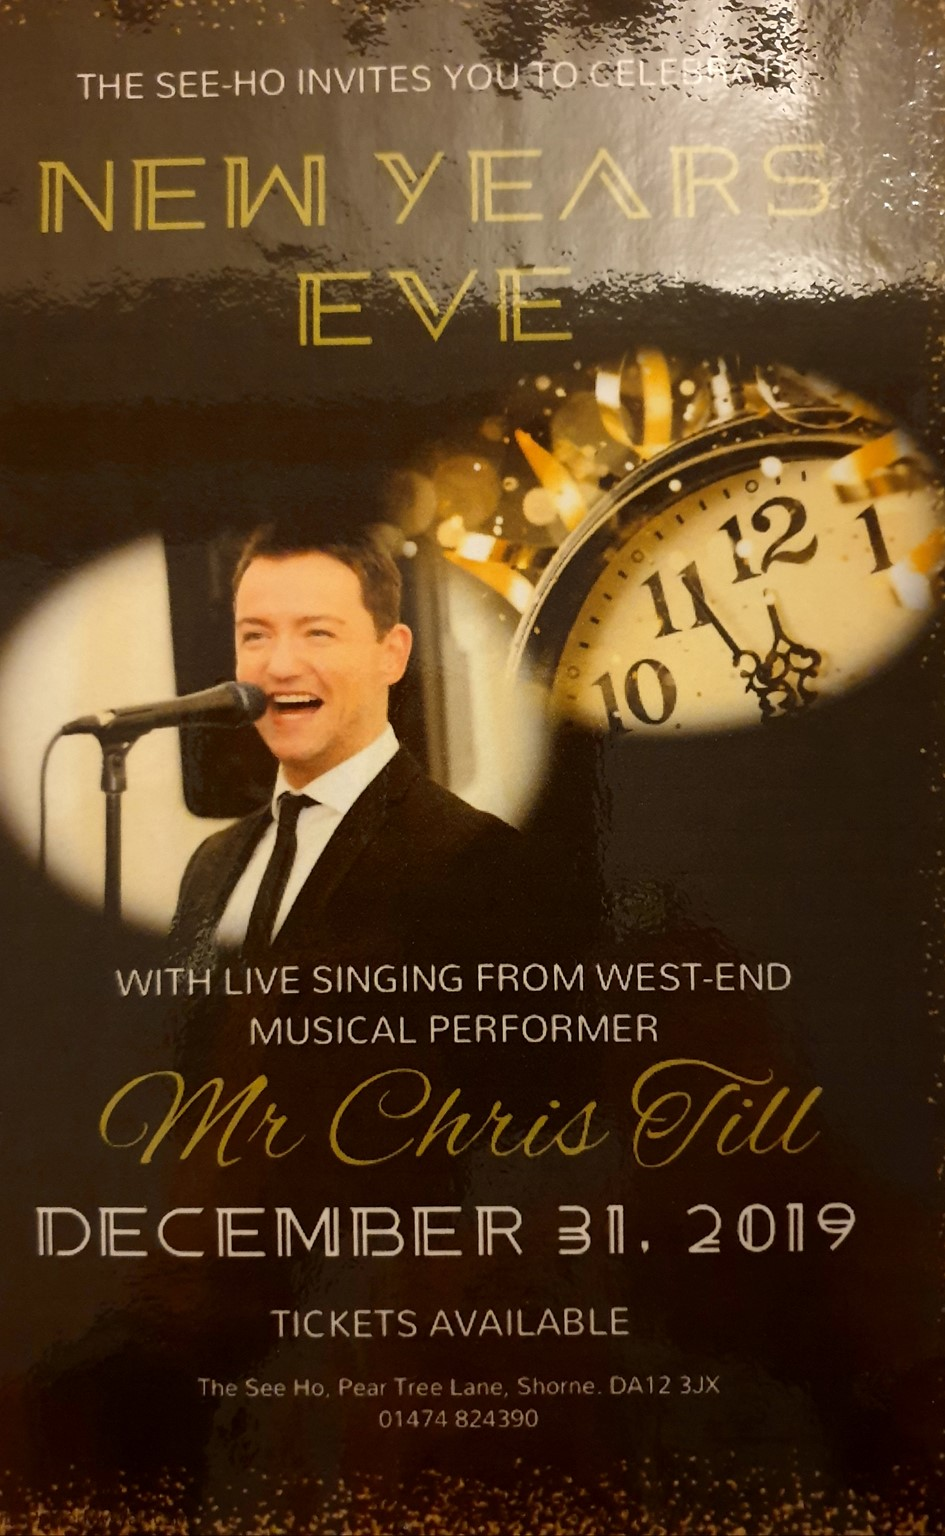 NEW YEARS EVE WITH CHRIS TILL